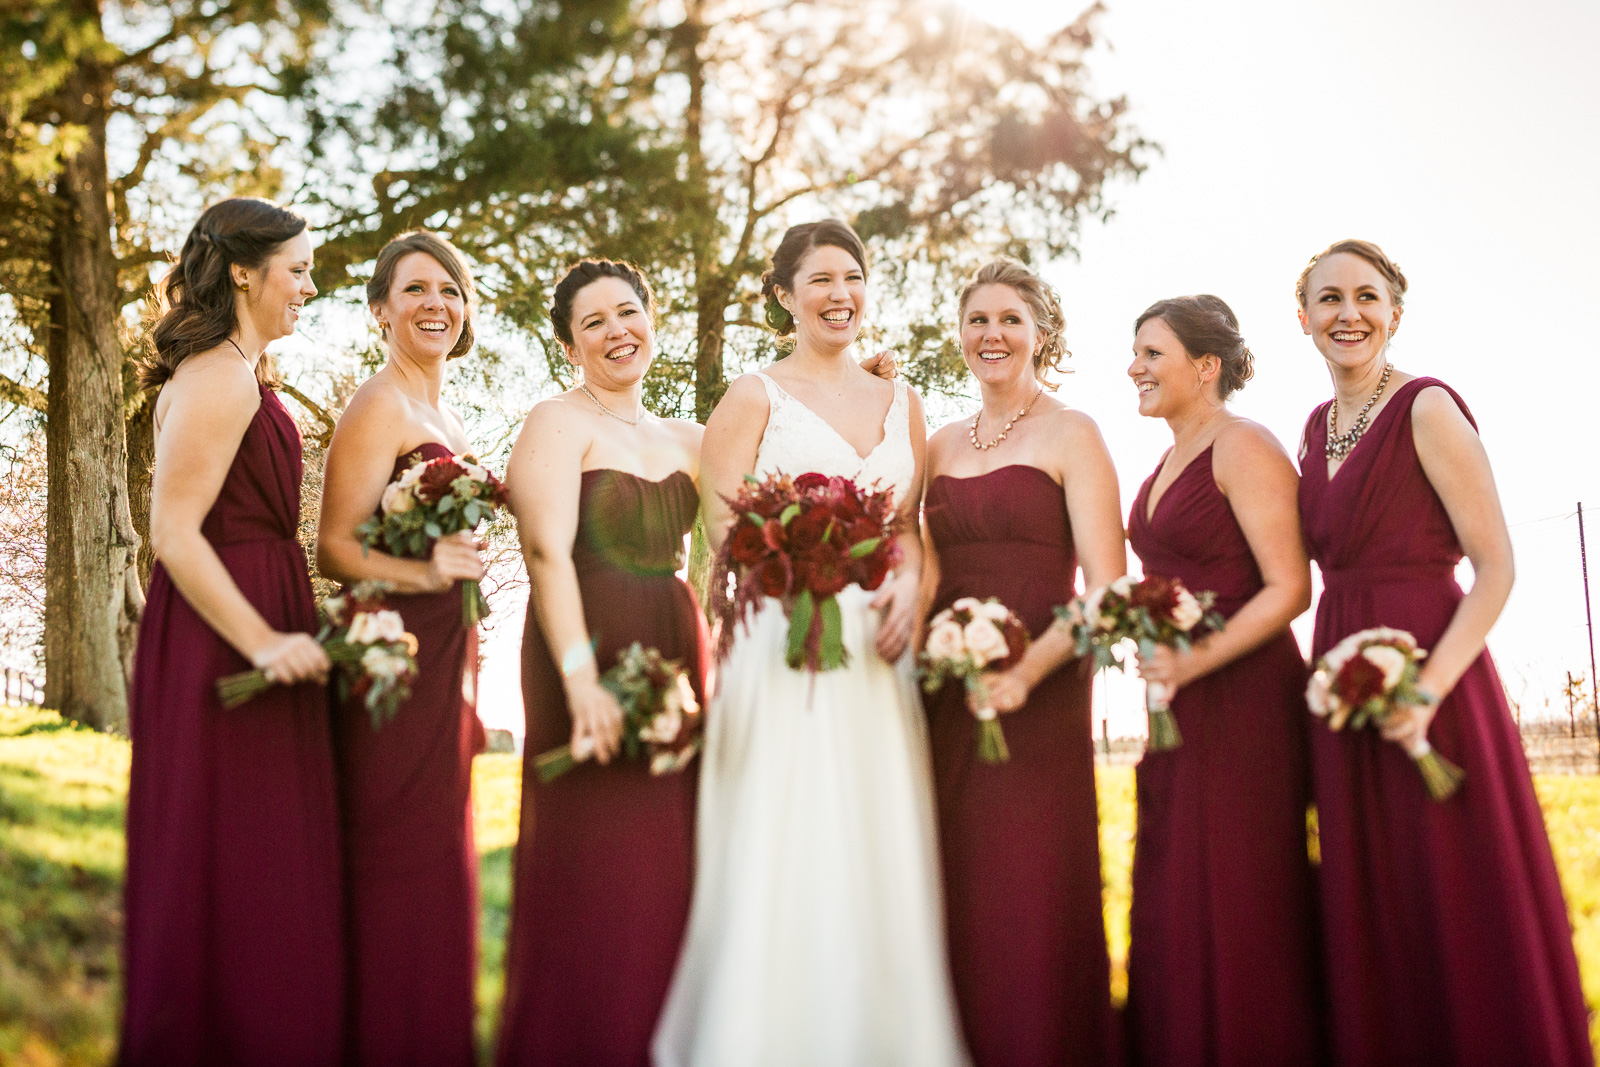 wine colored bridesmaid dresses winery wedding romantic outdoors